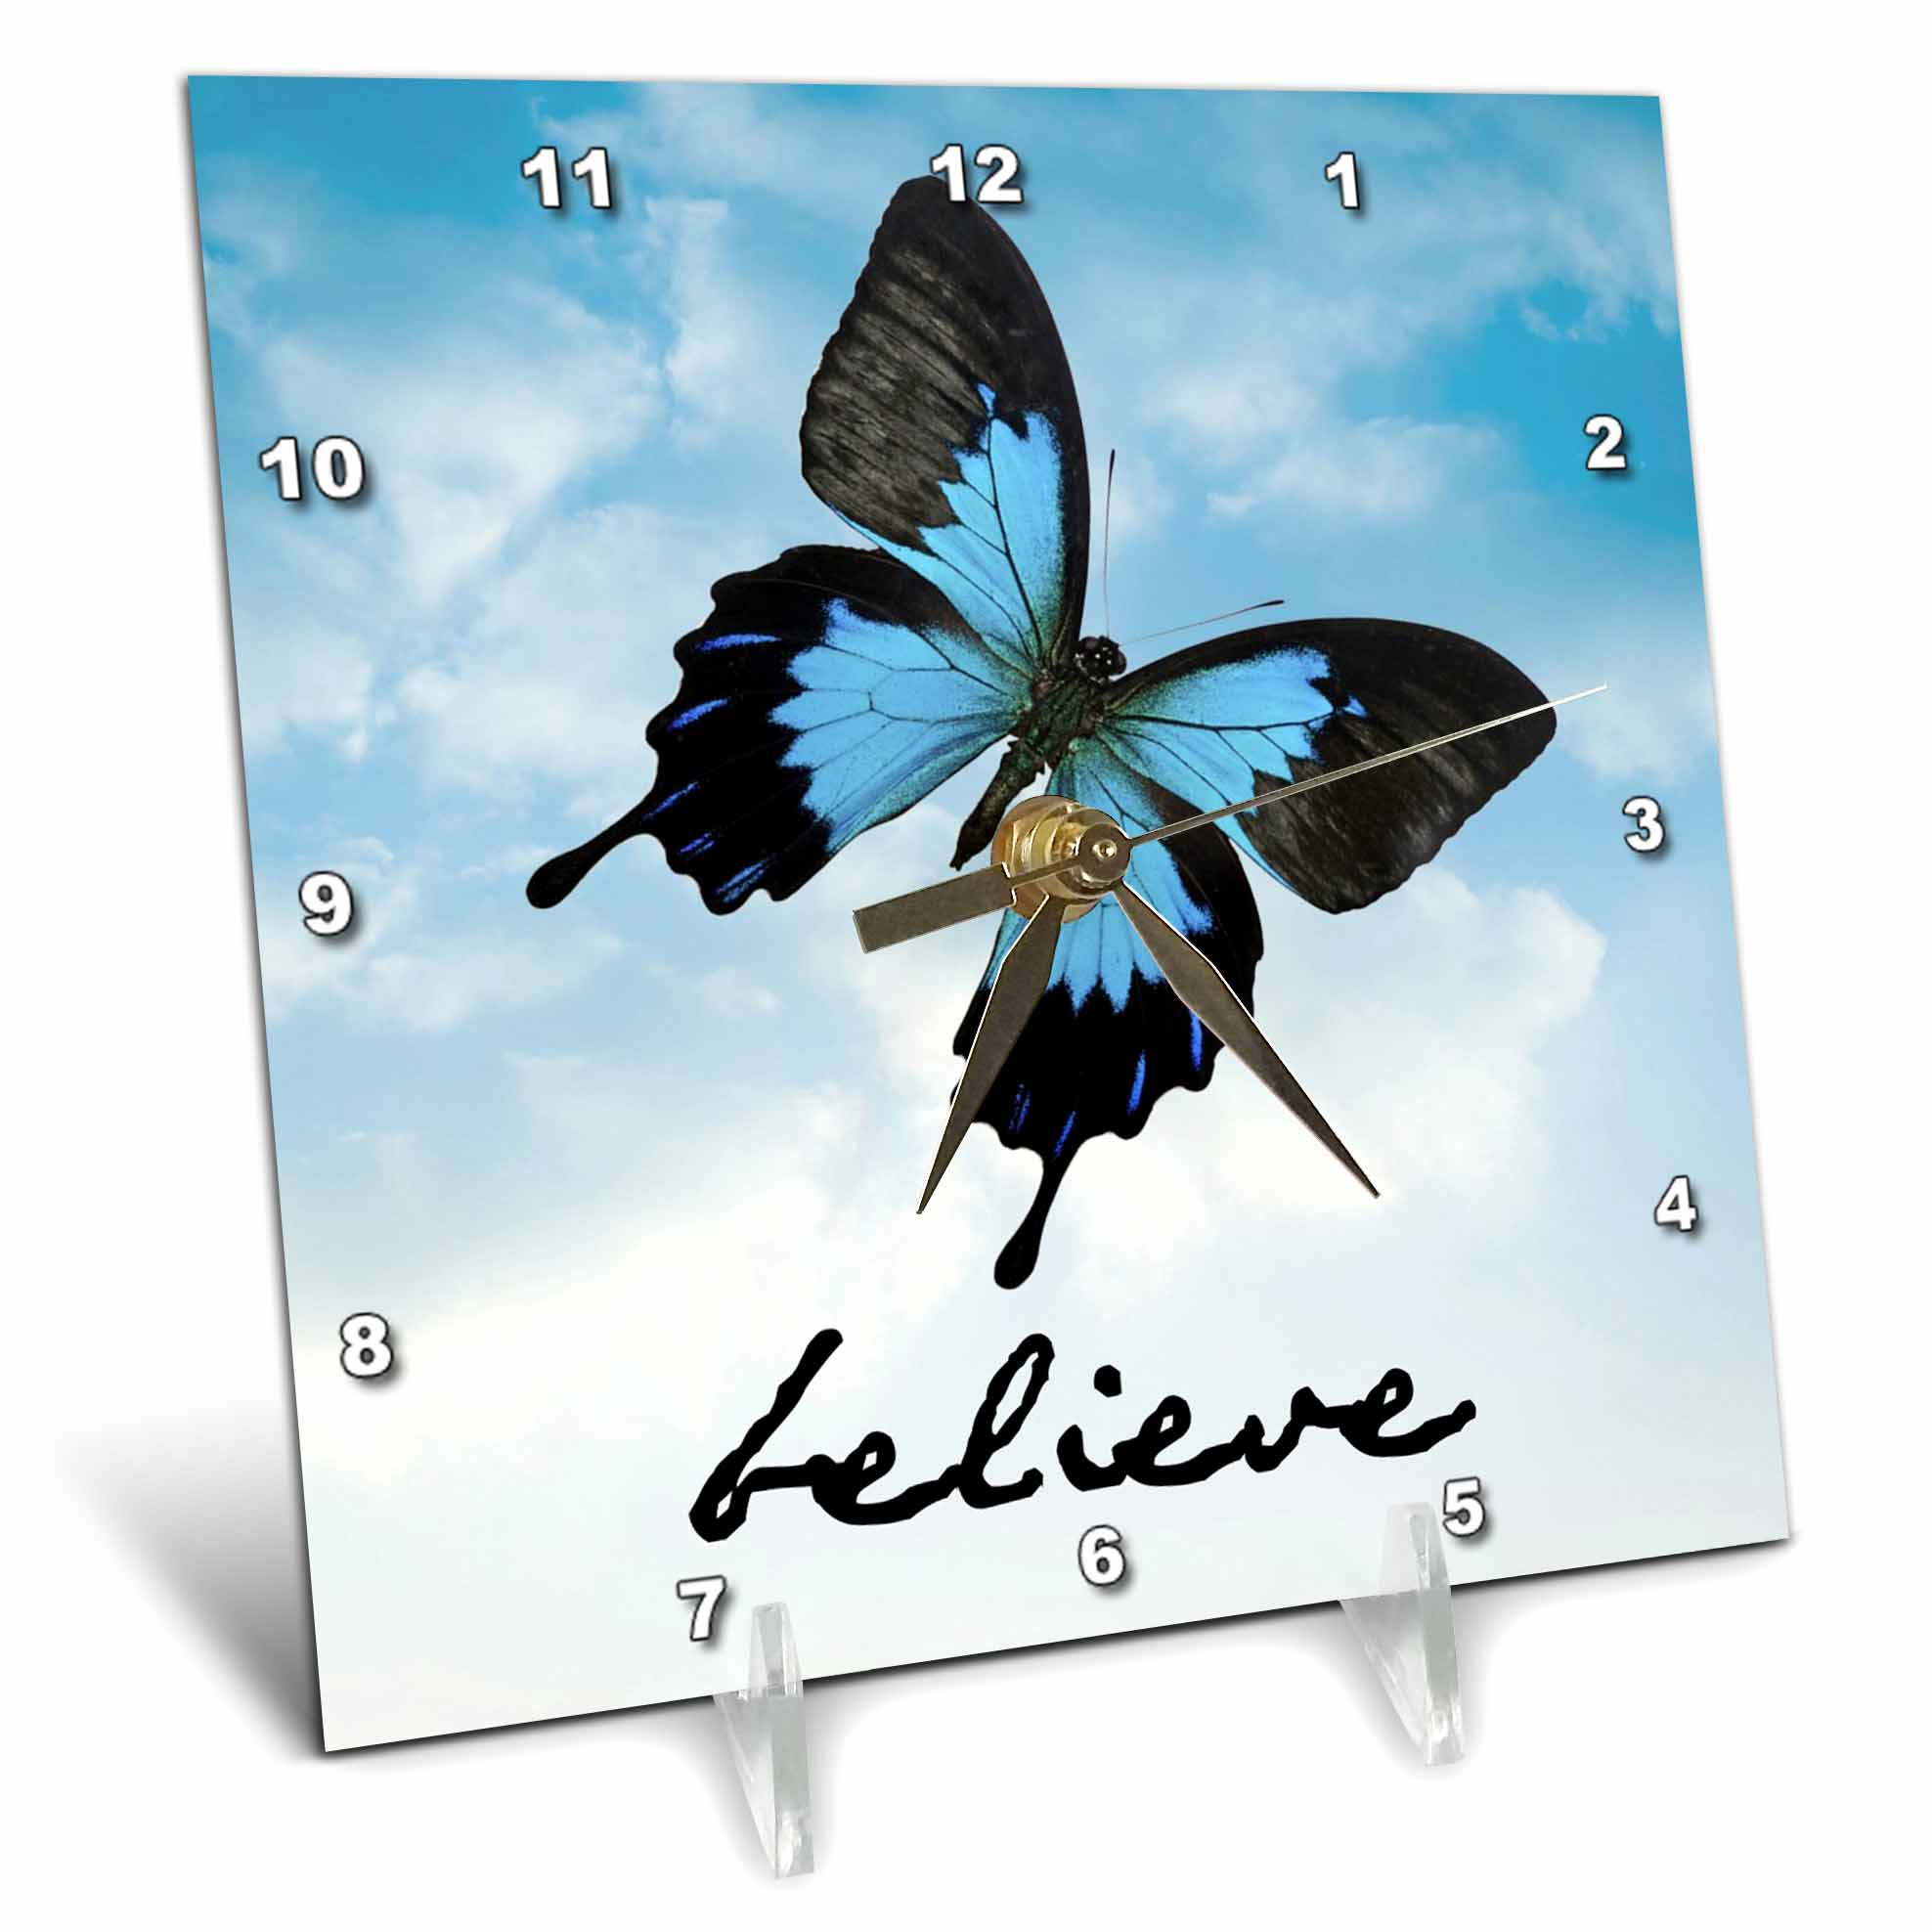 3dRose believe black lettering with picture of butterfly on sky background, Desk Clock, 6 by 6-inch by 3dRose